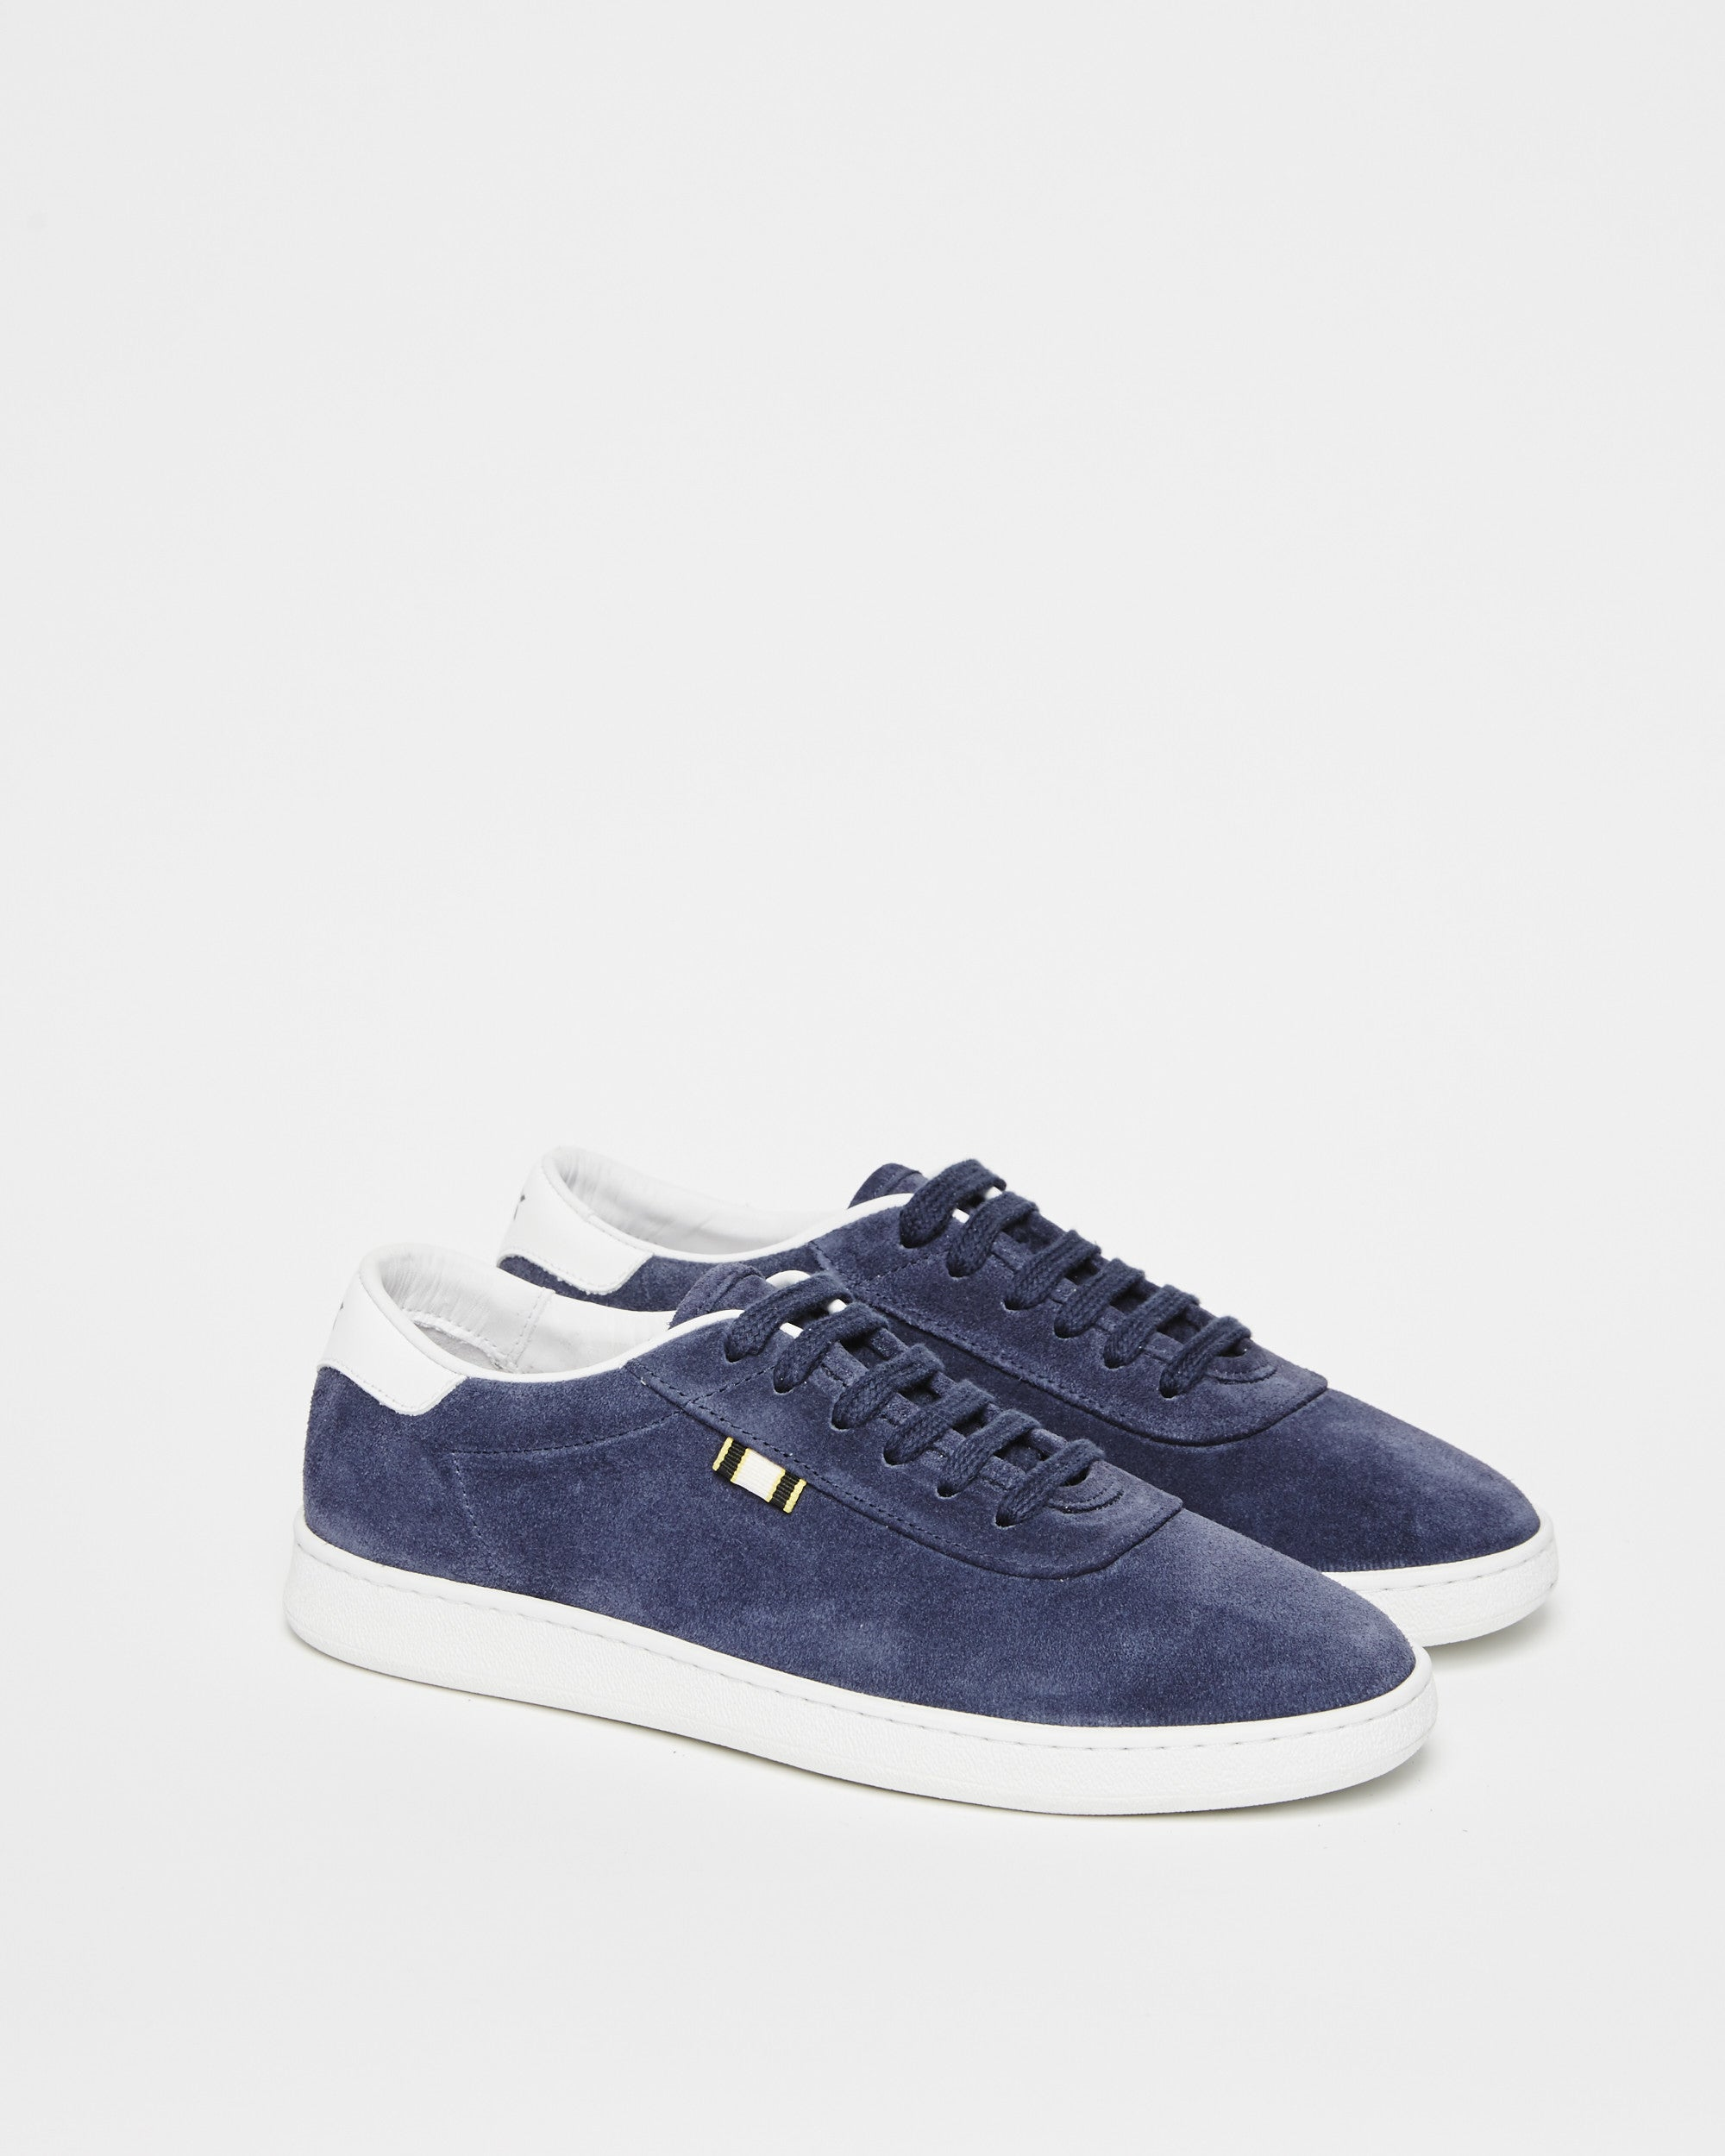 APR002 - Suede - Navy